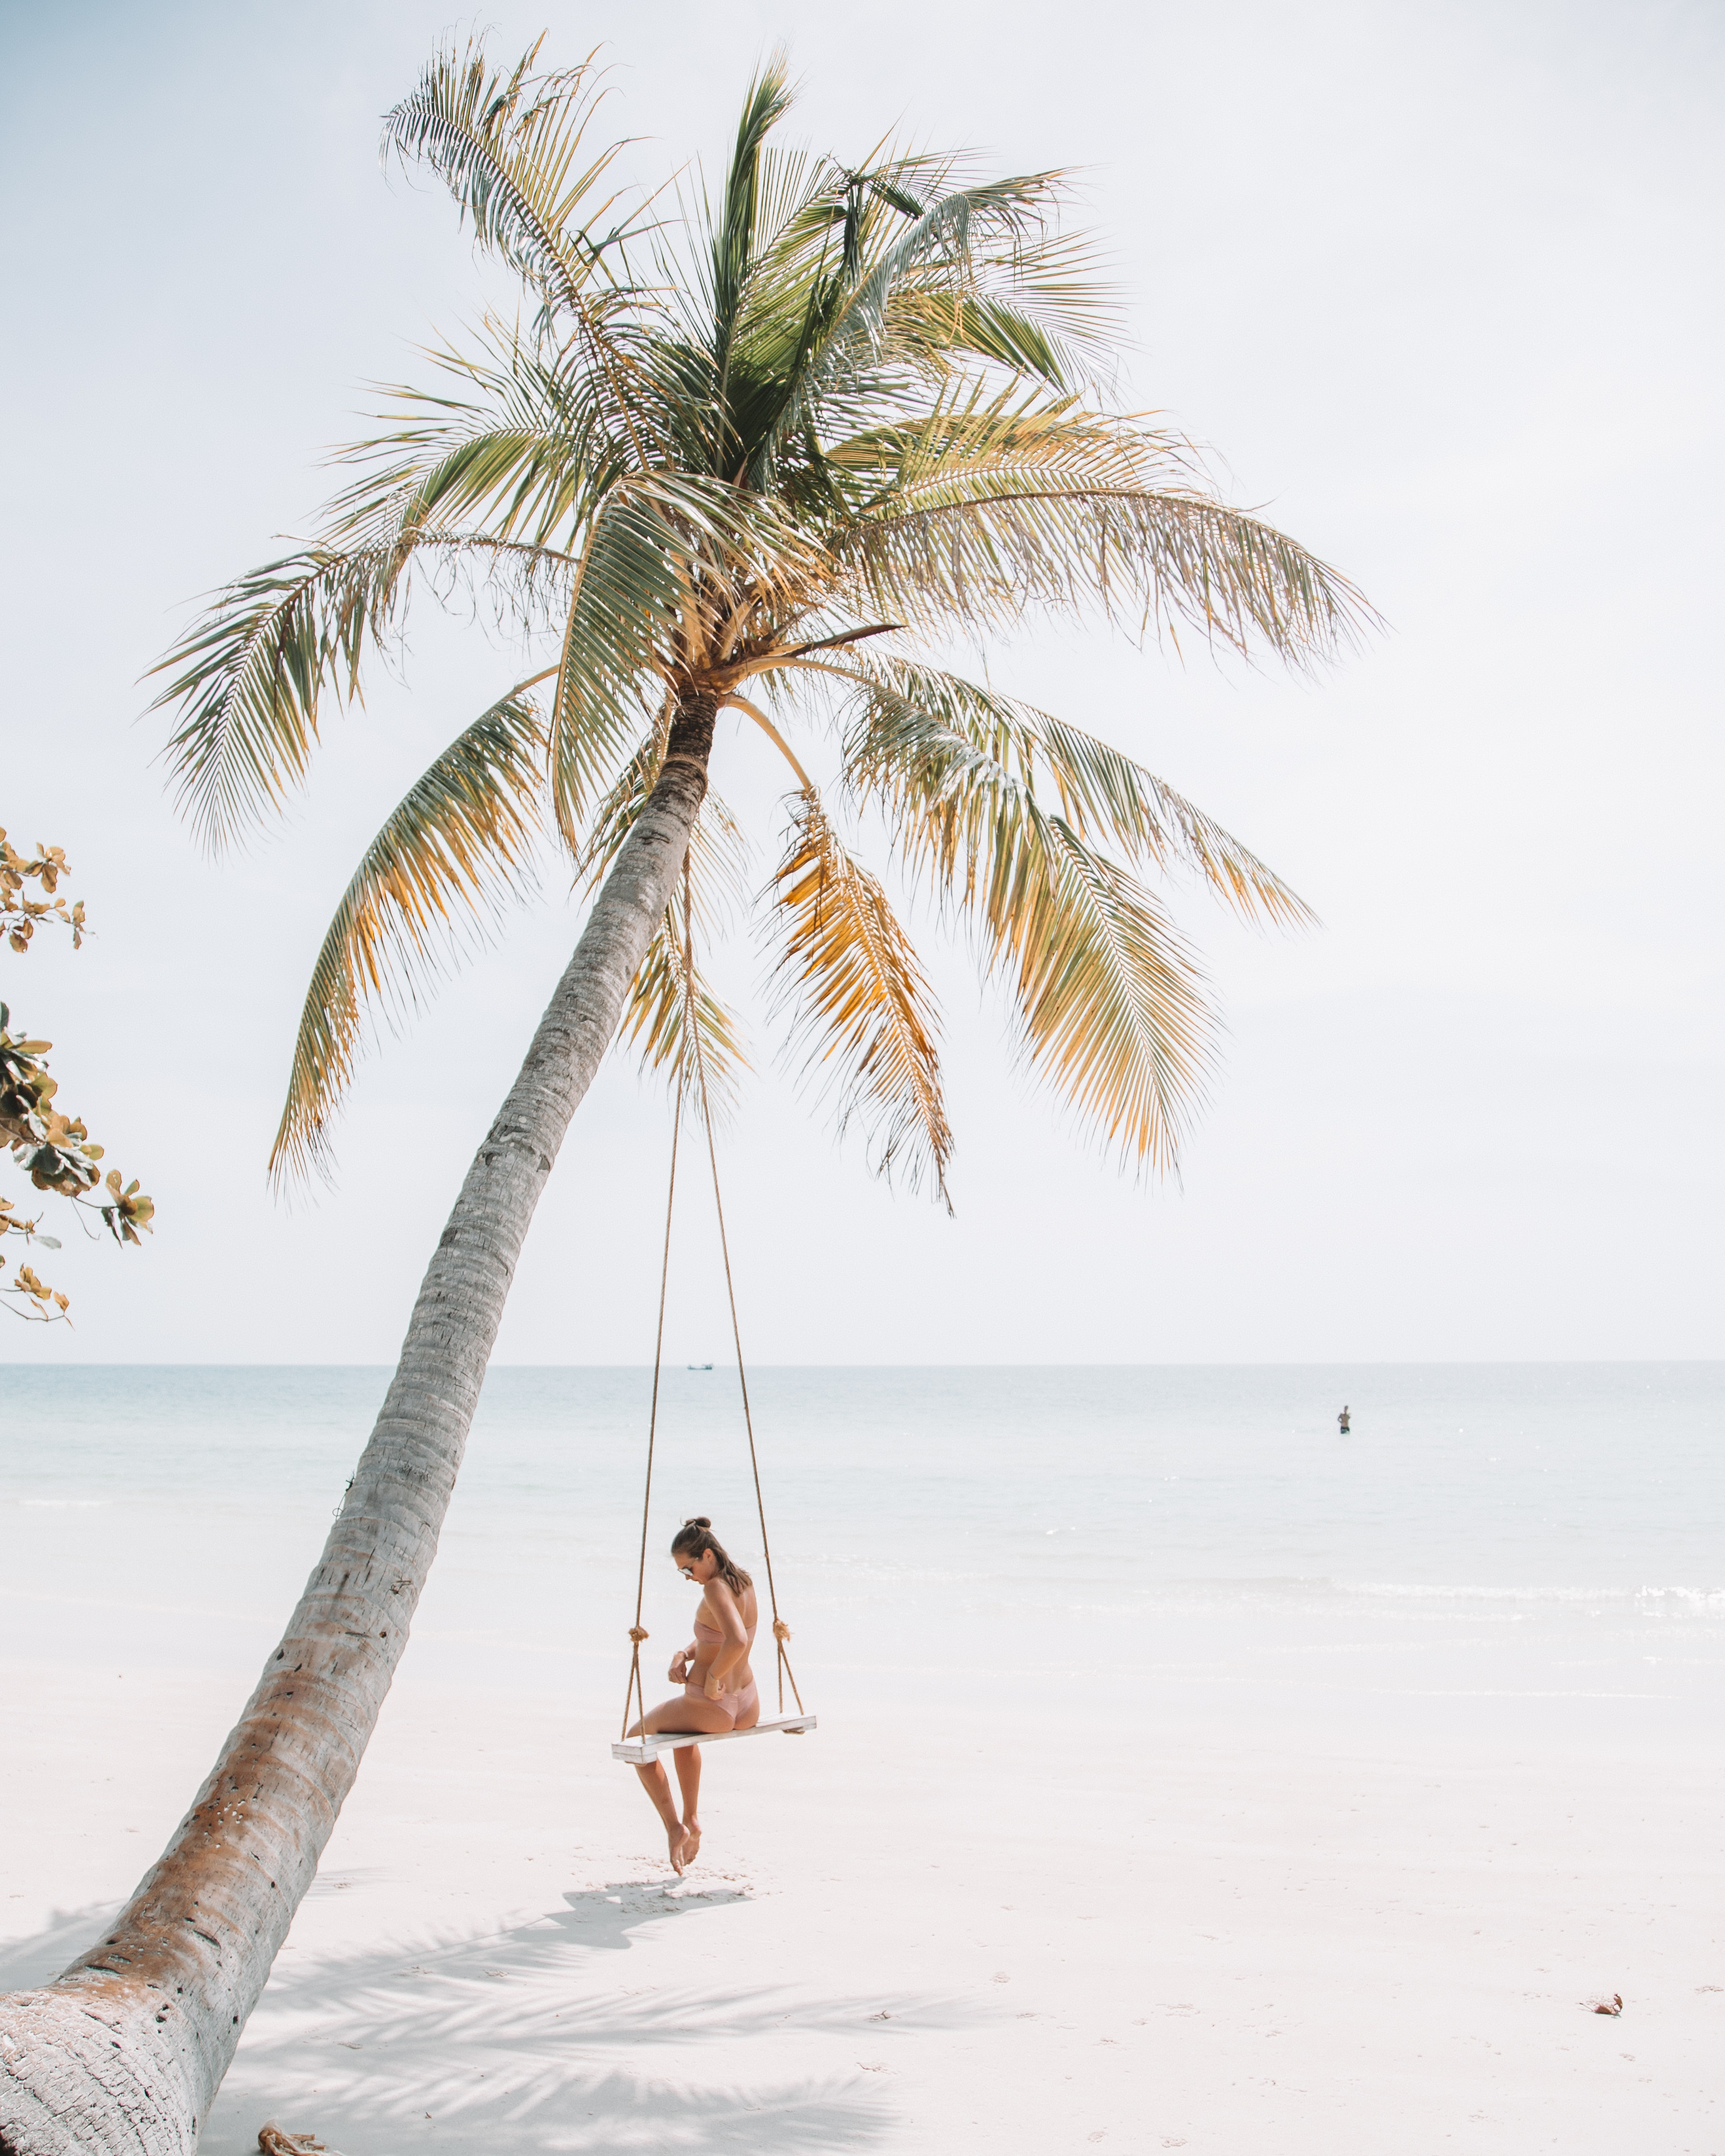 woman wearing bikini sitting on swing near coconut tree